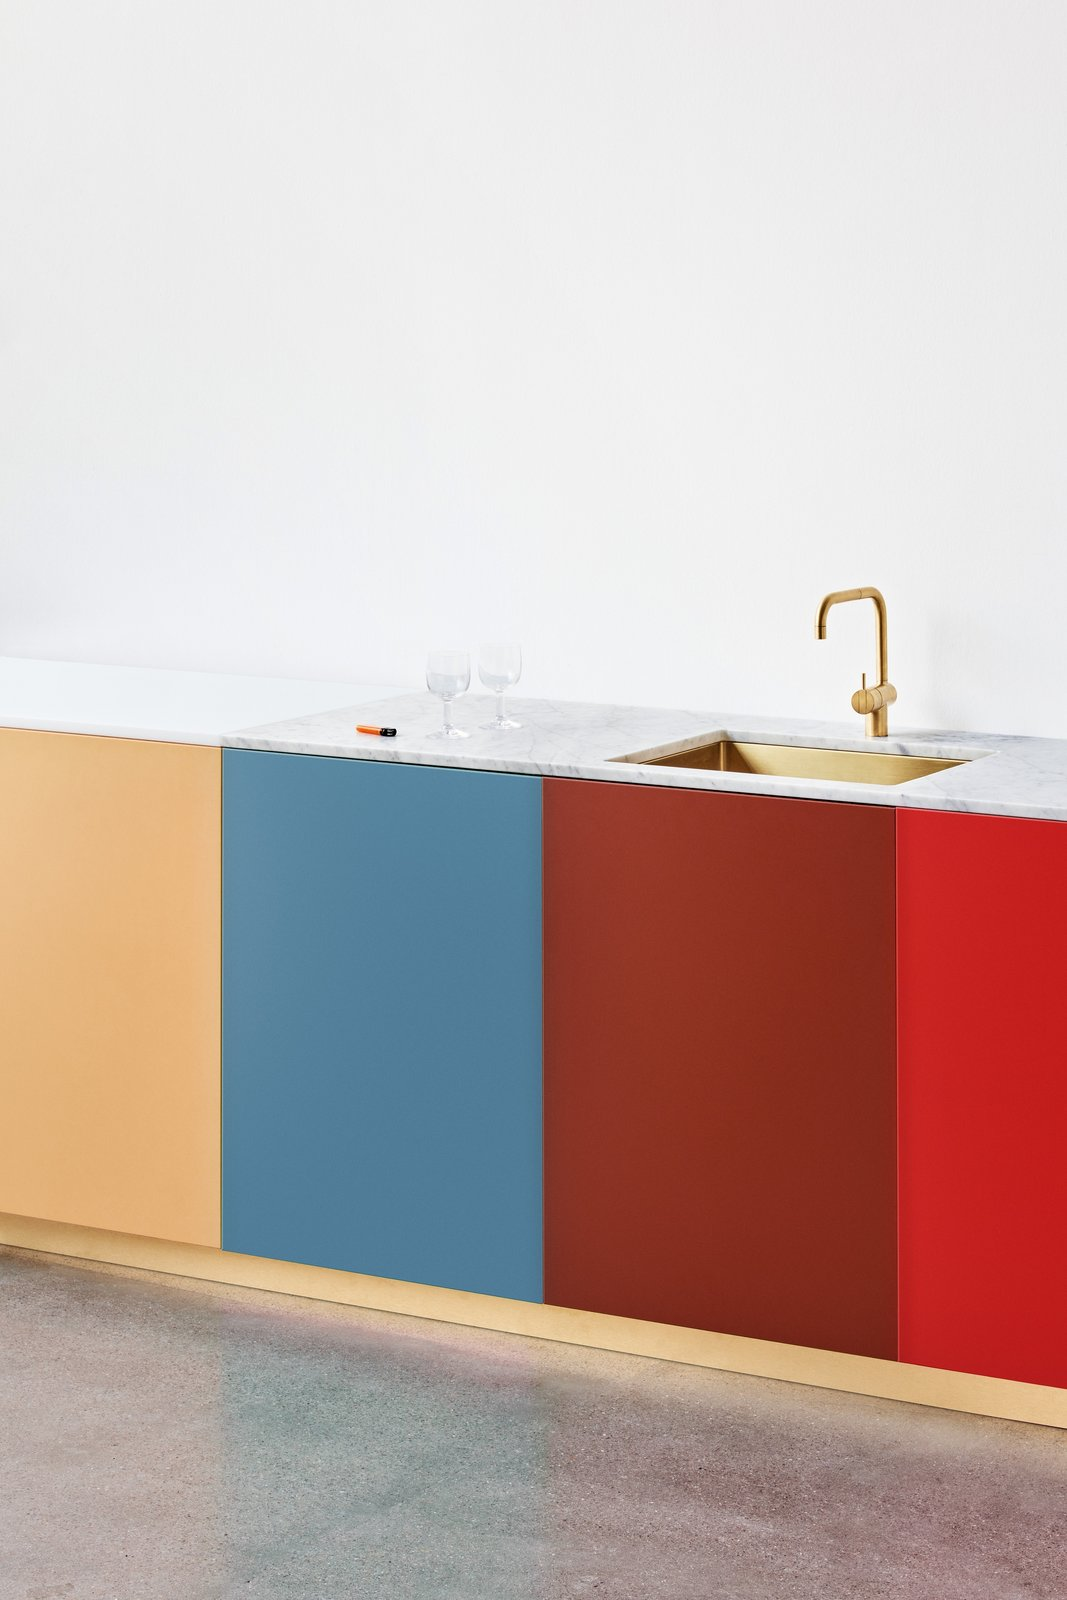 Kitchen, Undermount, Concrete, Marble, and Colorful The bright, bold panels are paired with classic features like marble countertops and playful on-trend elements like a brass faucet and sink.  Best Kitchen Photos from Get a Designer Kitchen on an IKEA Budget With Reform's New Fronts and Tops